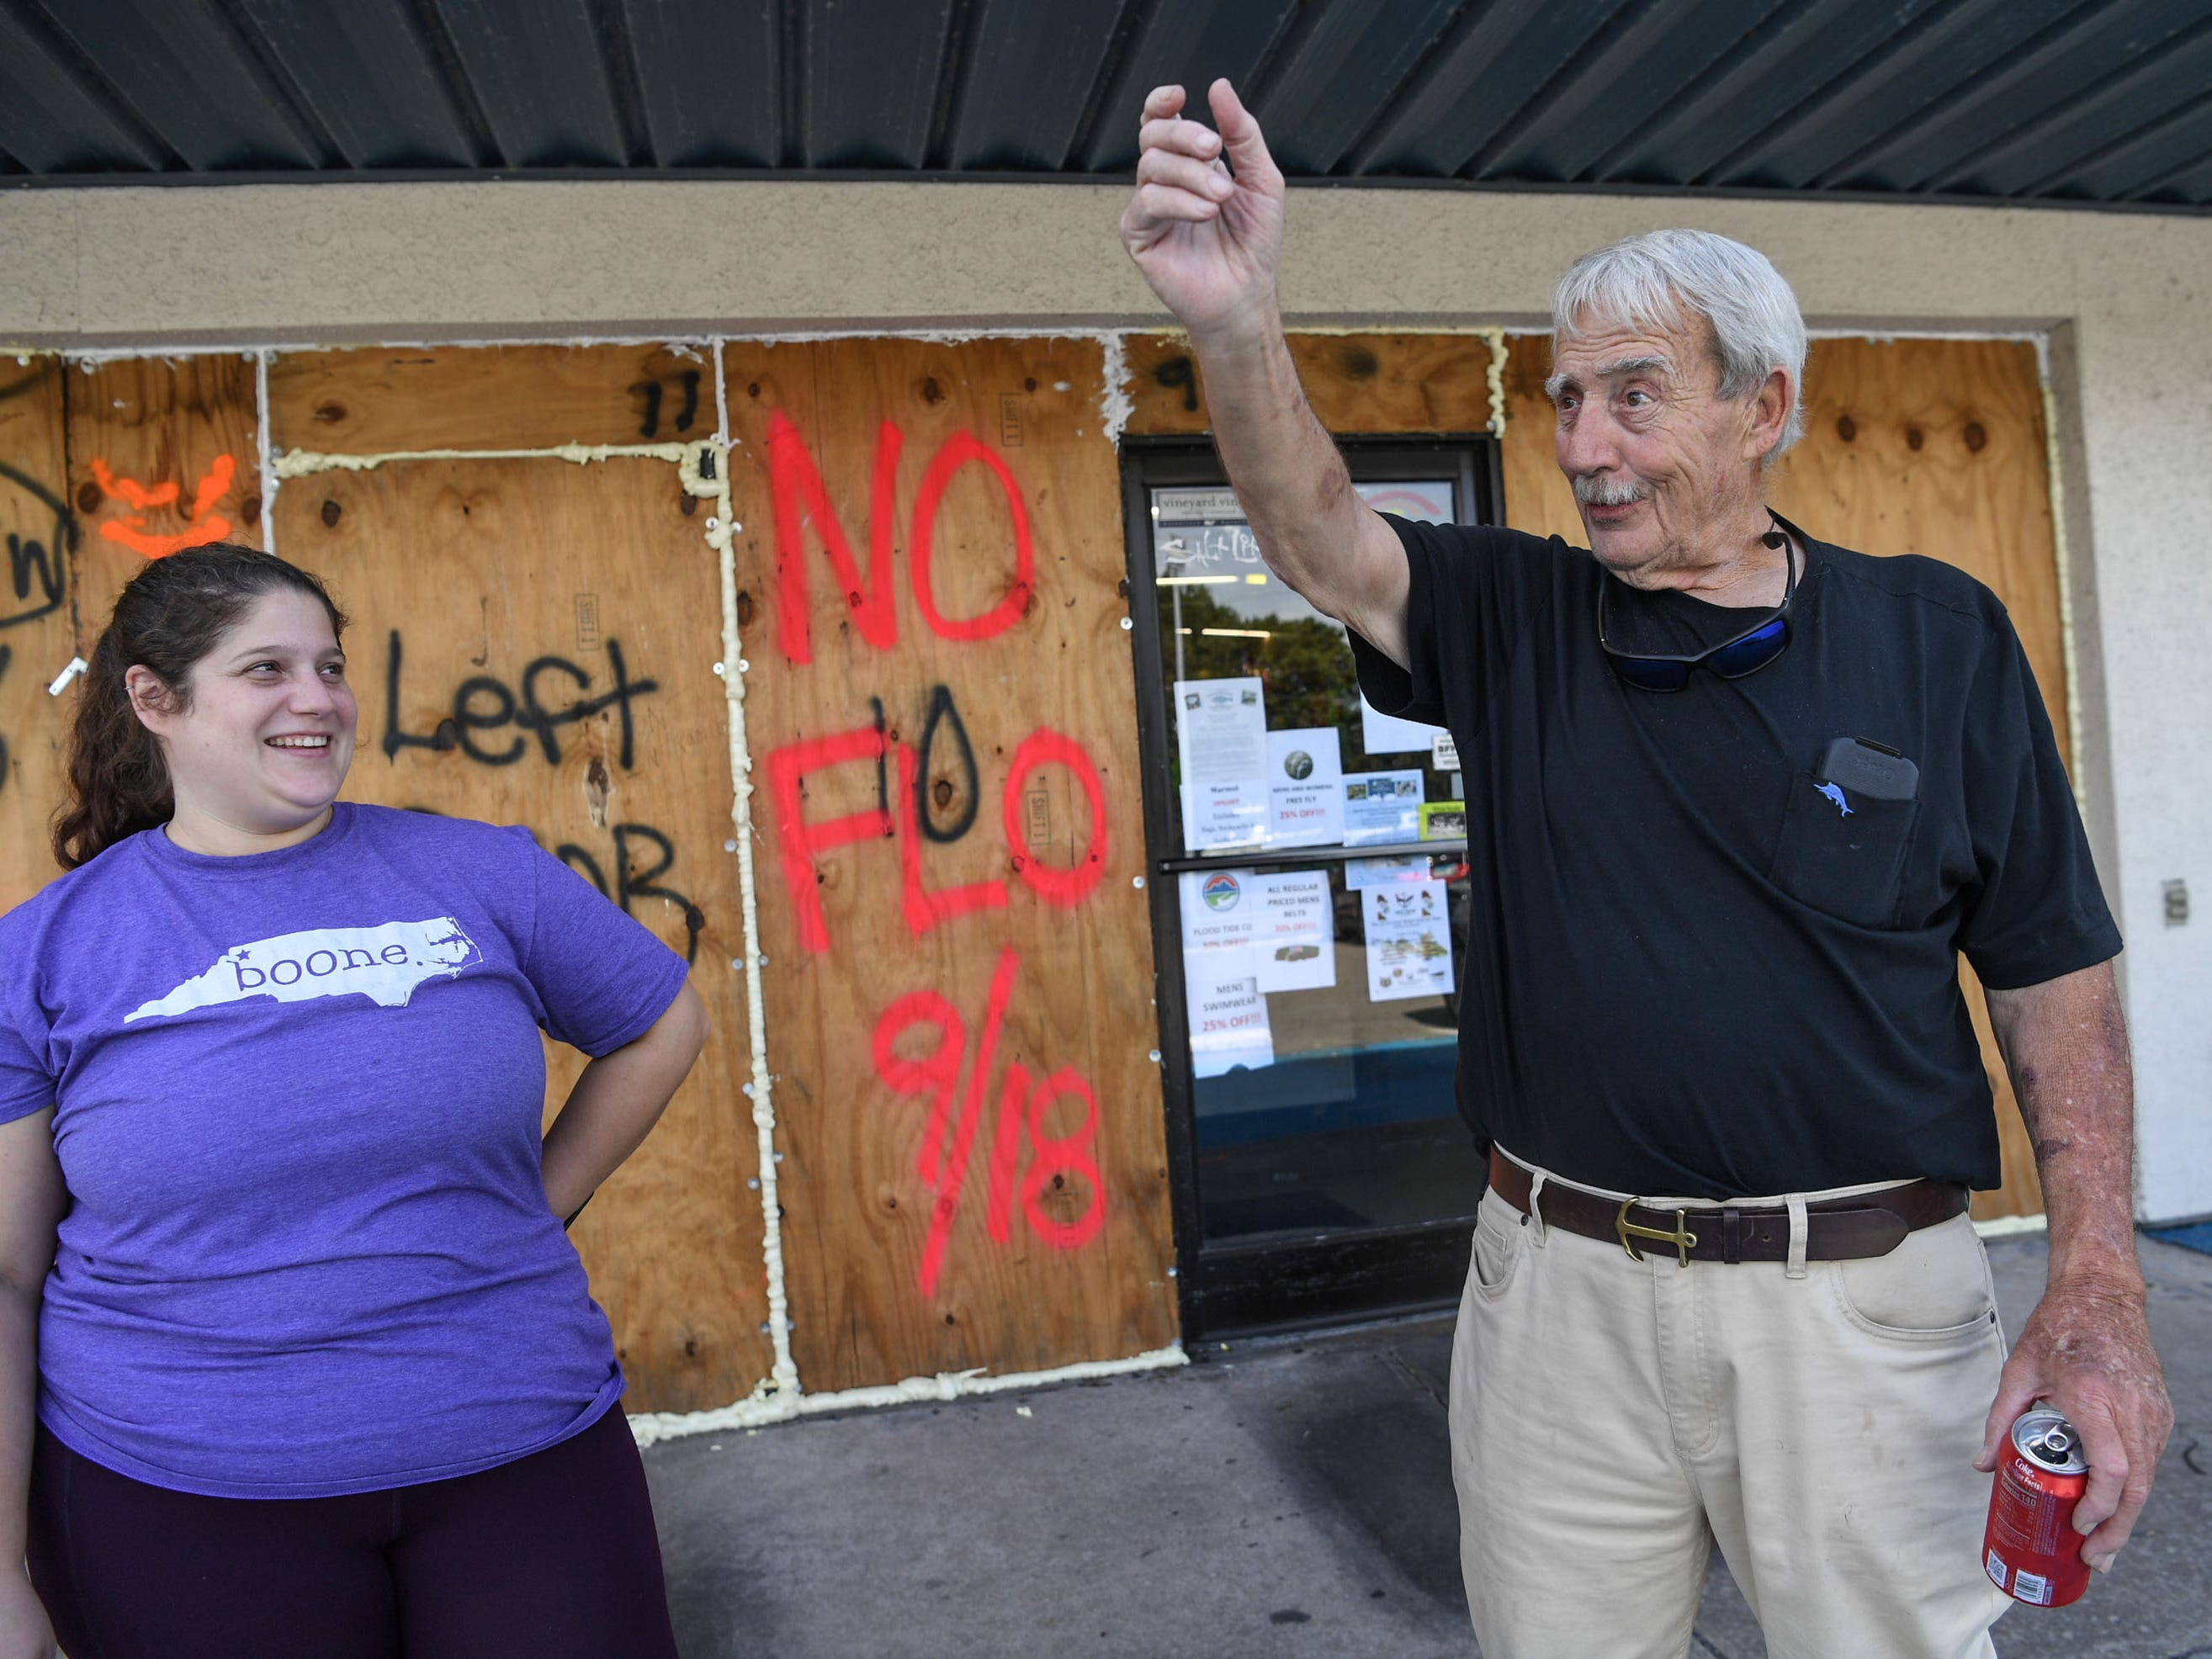 Meredith Reddick, left, and her father Gordon Reddick, owner of Redix store, talk about debris flying through the air and the need for plywood boards covering his windows, on Tuesday, Sept. 11, 2018. Reddick has used the same boards since 1993, and wrote names for each storm ever since.